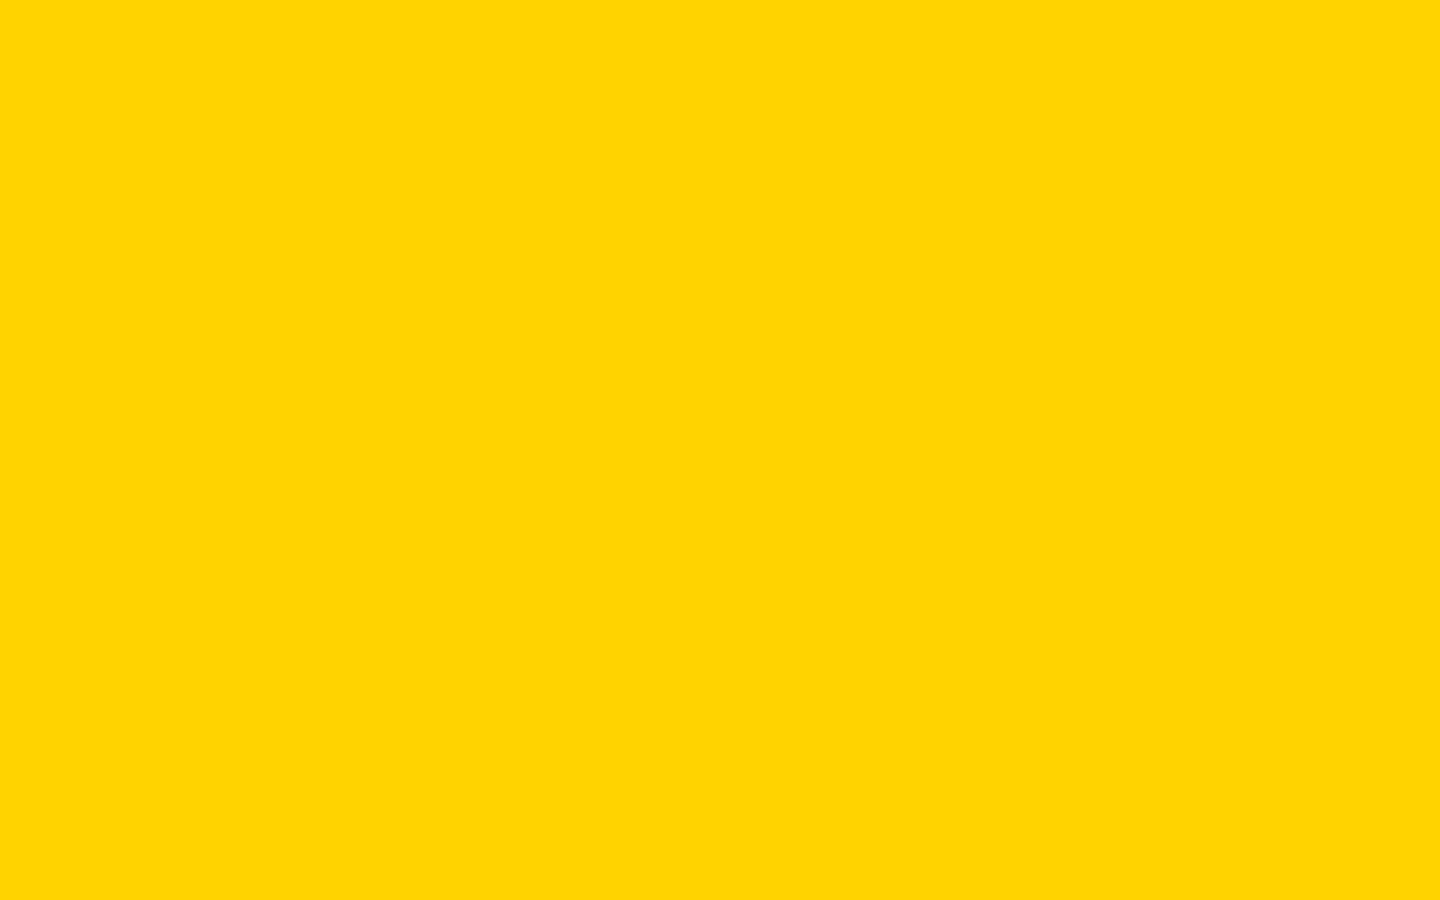 1440x900 Cyber Yellow Solid Color Background